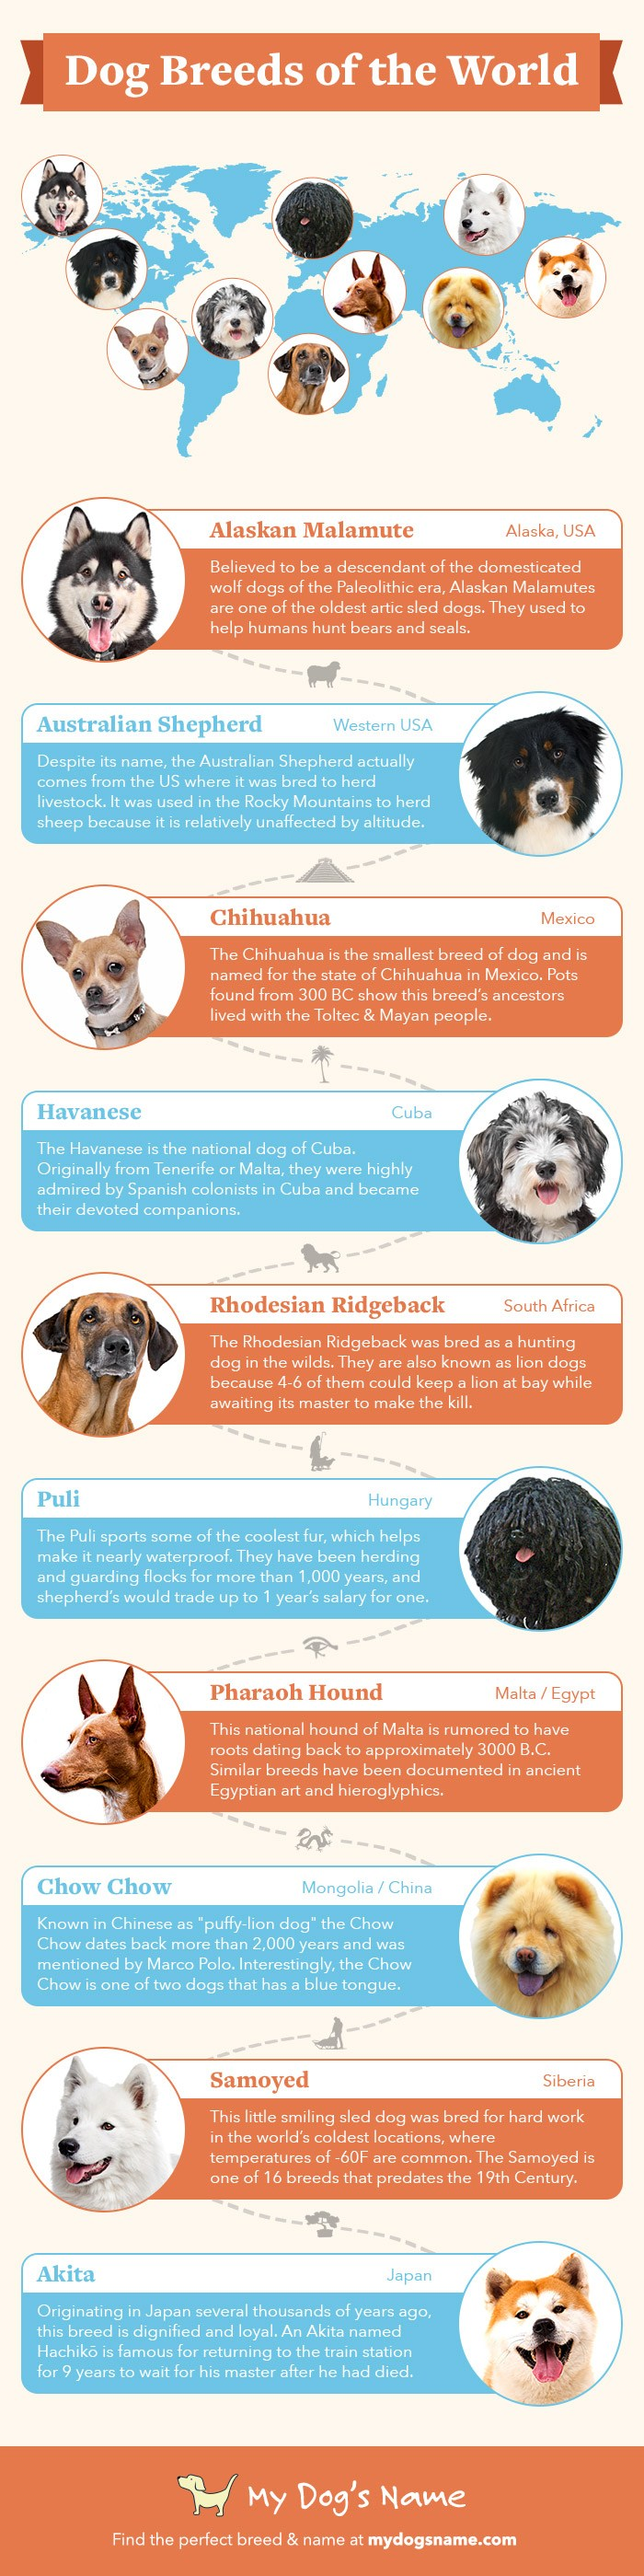 When you look at dogs from around the world, from the petite Pomeranian to the giant Great Dane, it's hard to believe they're the same species. Dogs vary so much in their appearance and personality. Check out these crazy facts about dog breeds from around the world!